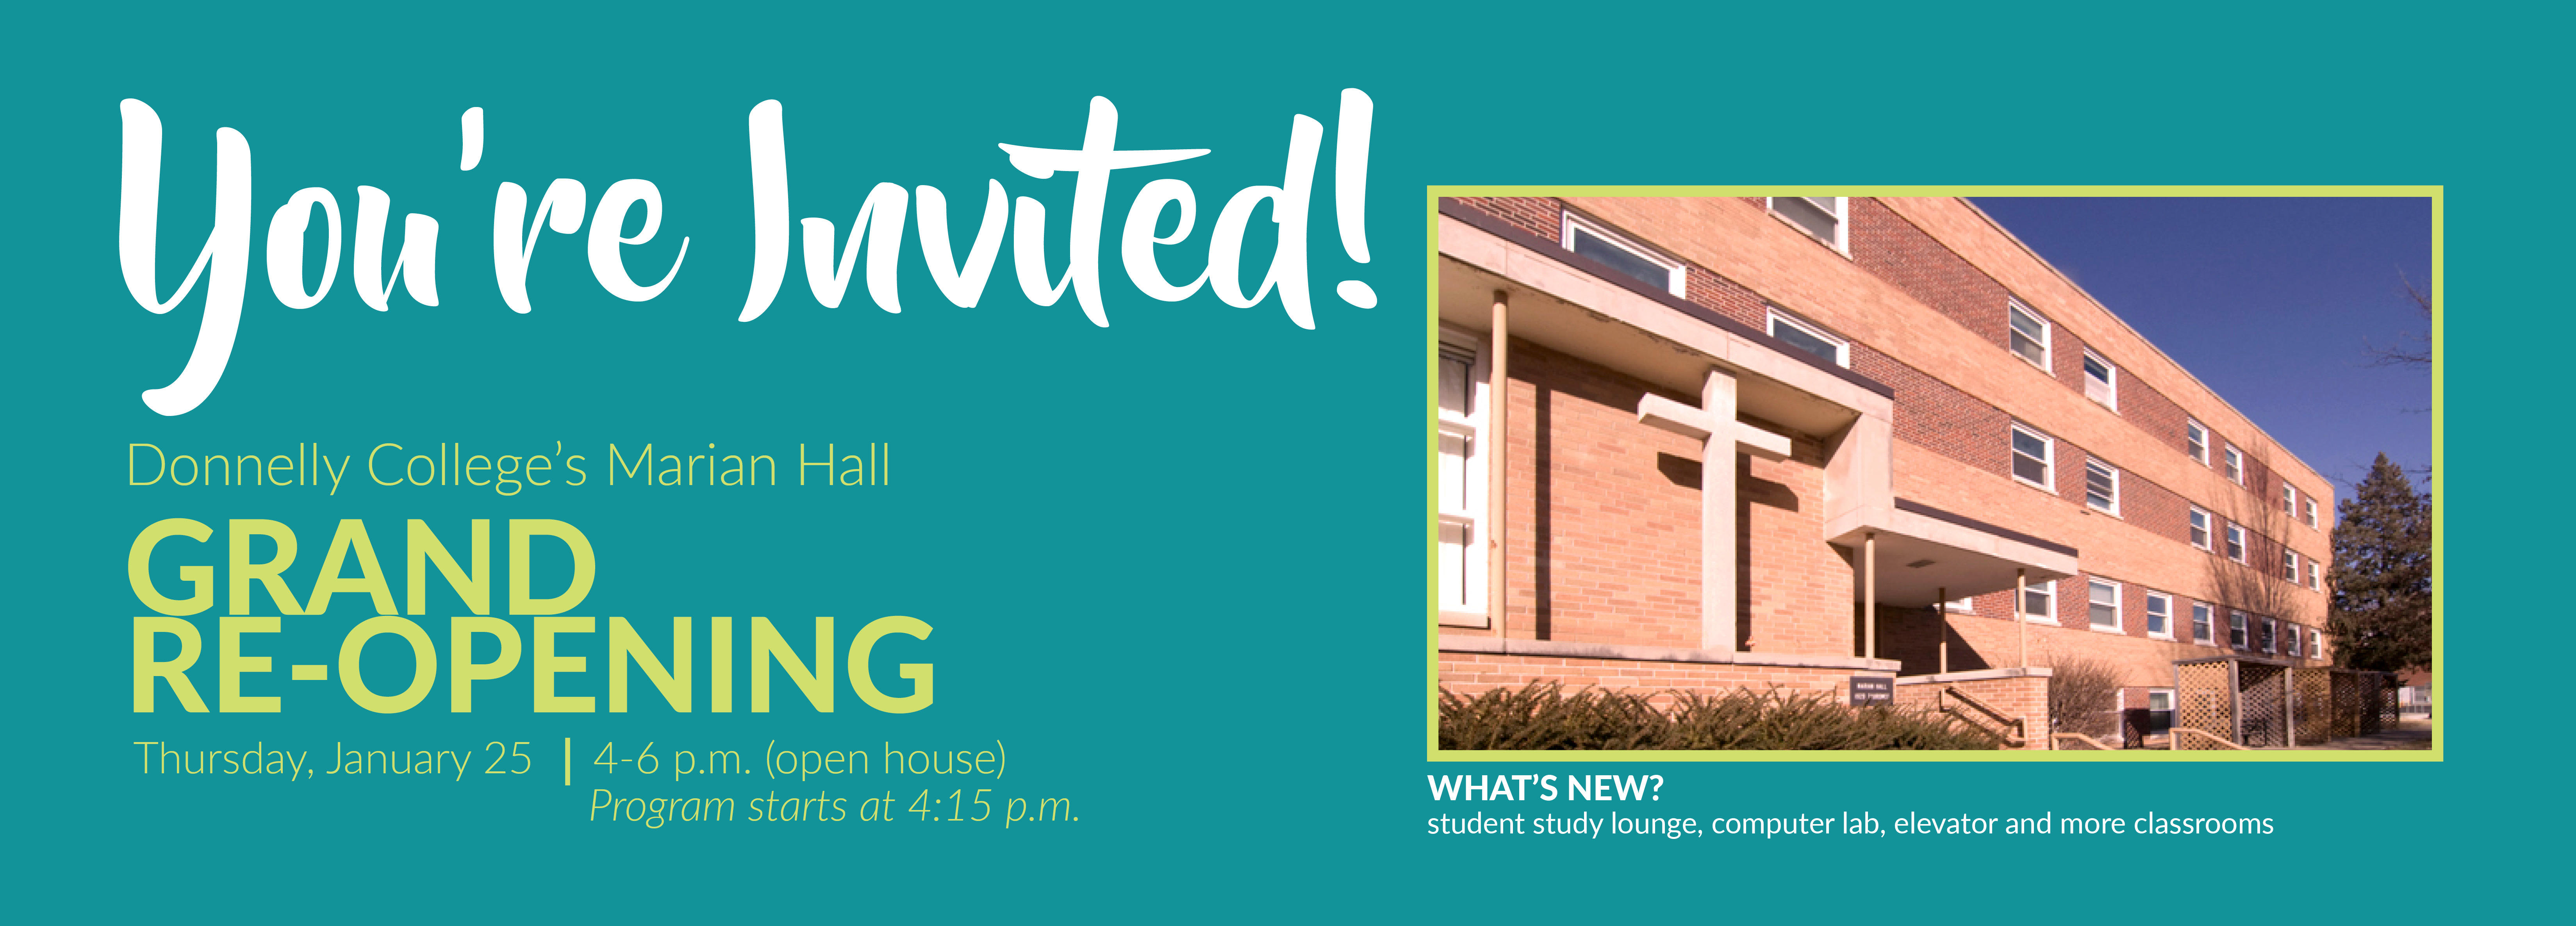 Donnelly College's Marian Hall Grand Re-Opening invite